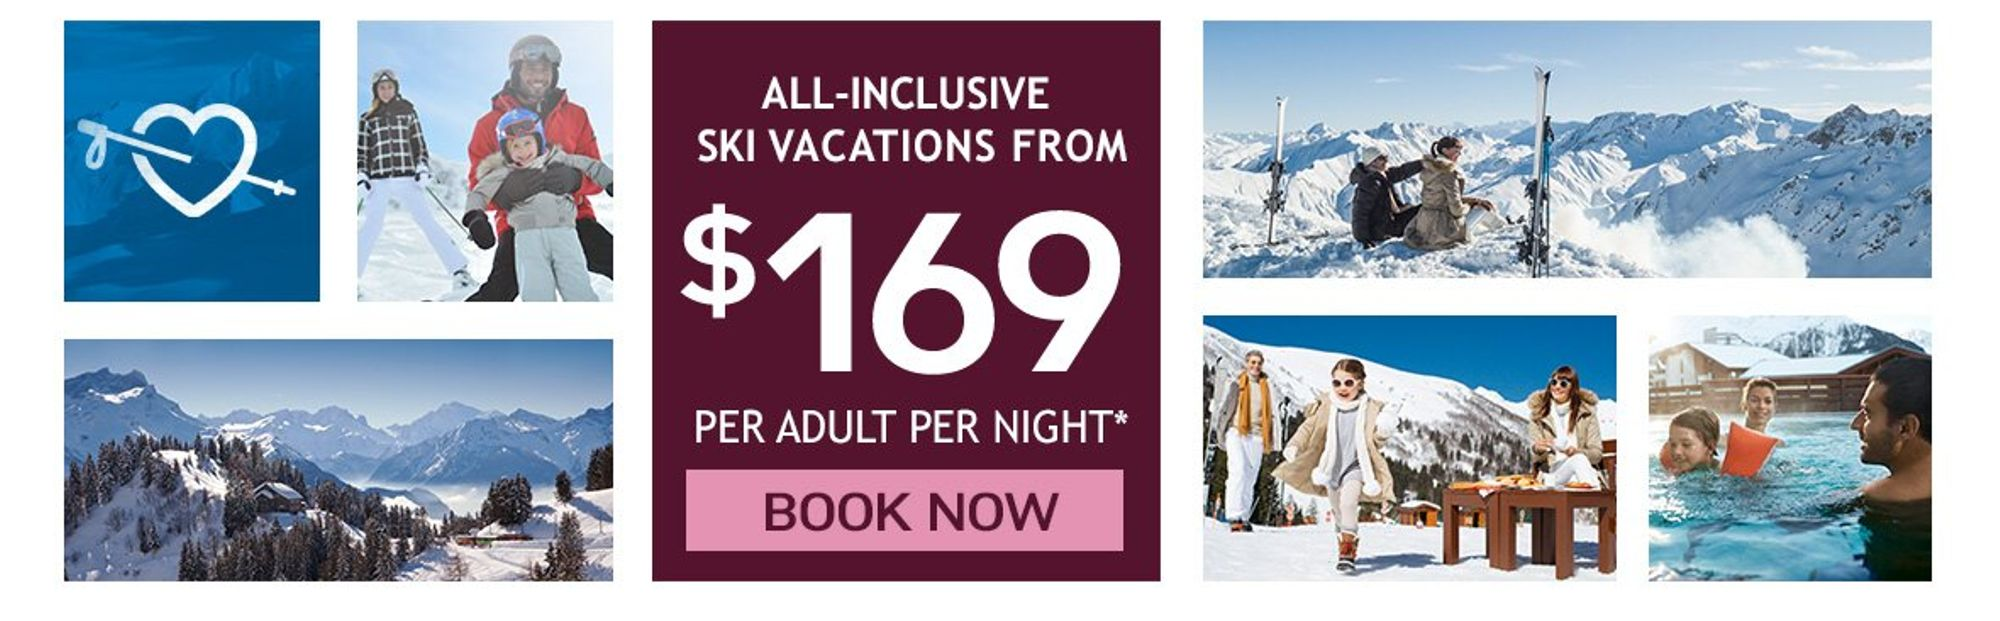 all inclusive ski promotion